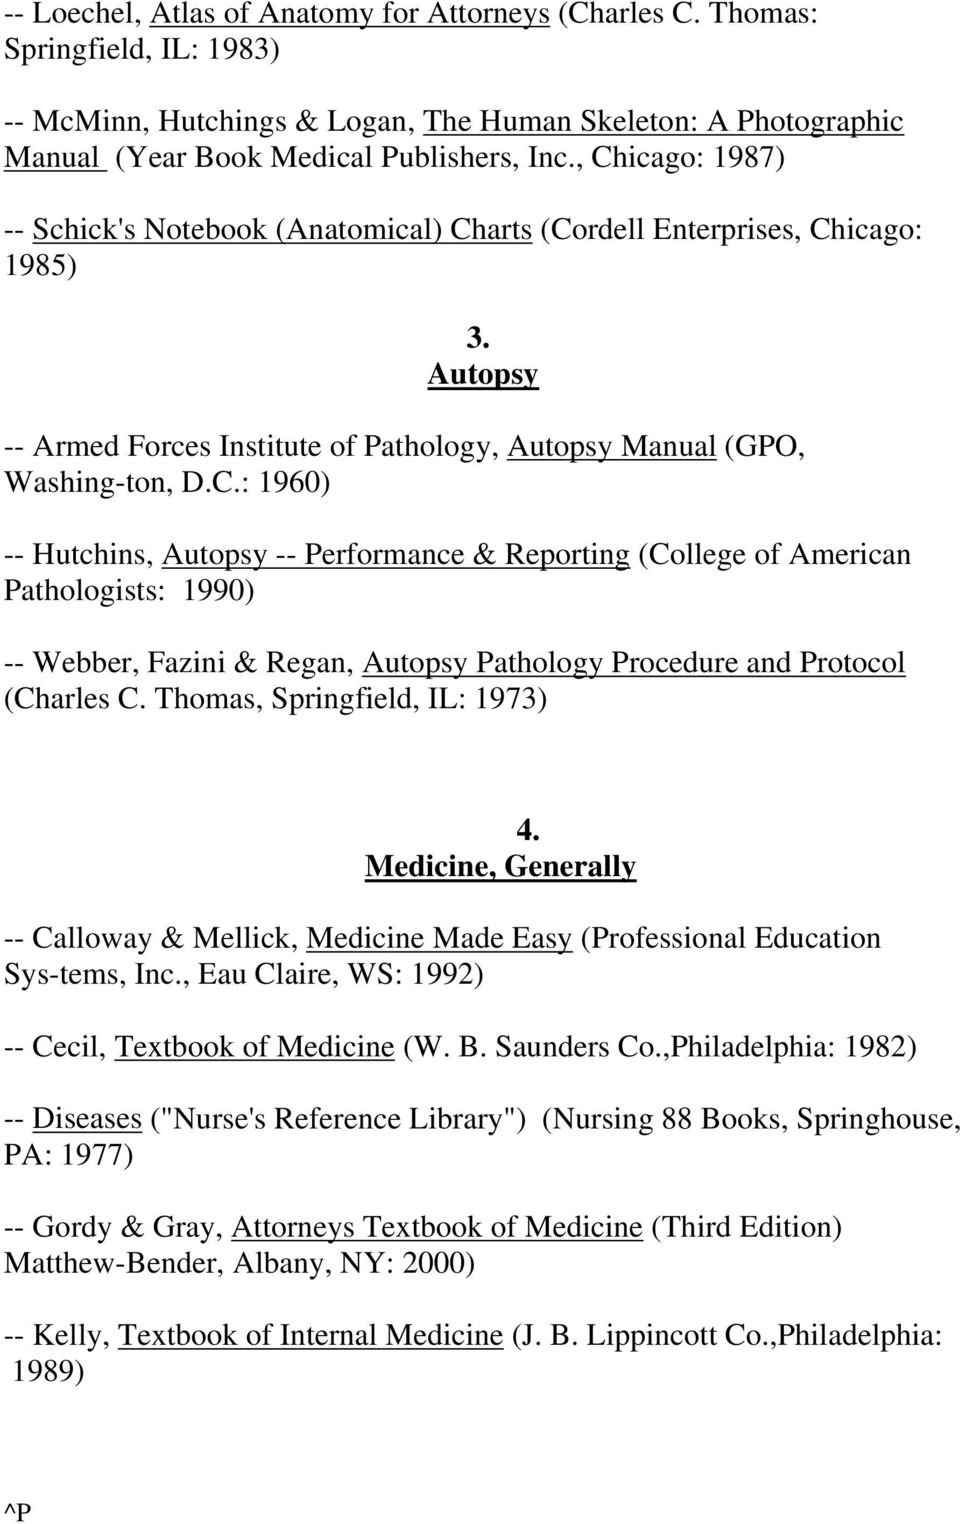 Thomas, Springfield, IL: 1973) 4. Medicine, Generally -- Calloway & Mellick, Medicine Made Easy (Professional Education Sys-tems, Inc., Eau Claire, WS: 1992) -- Cecil, Textbook of Medicine (W. B.